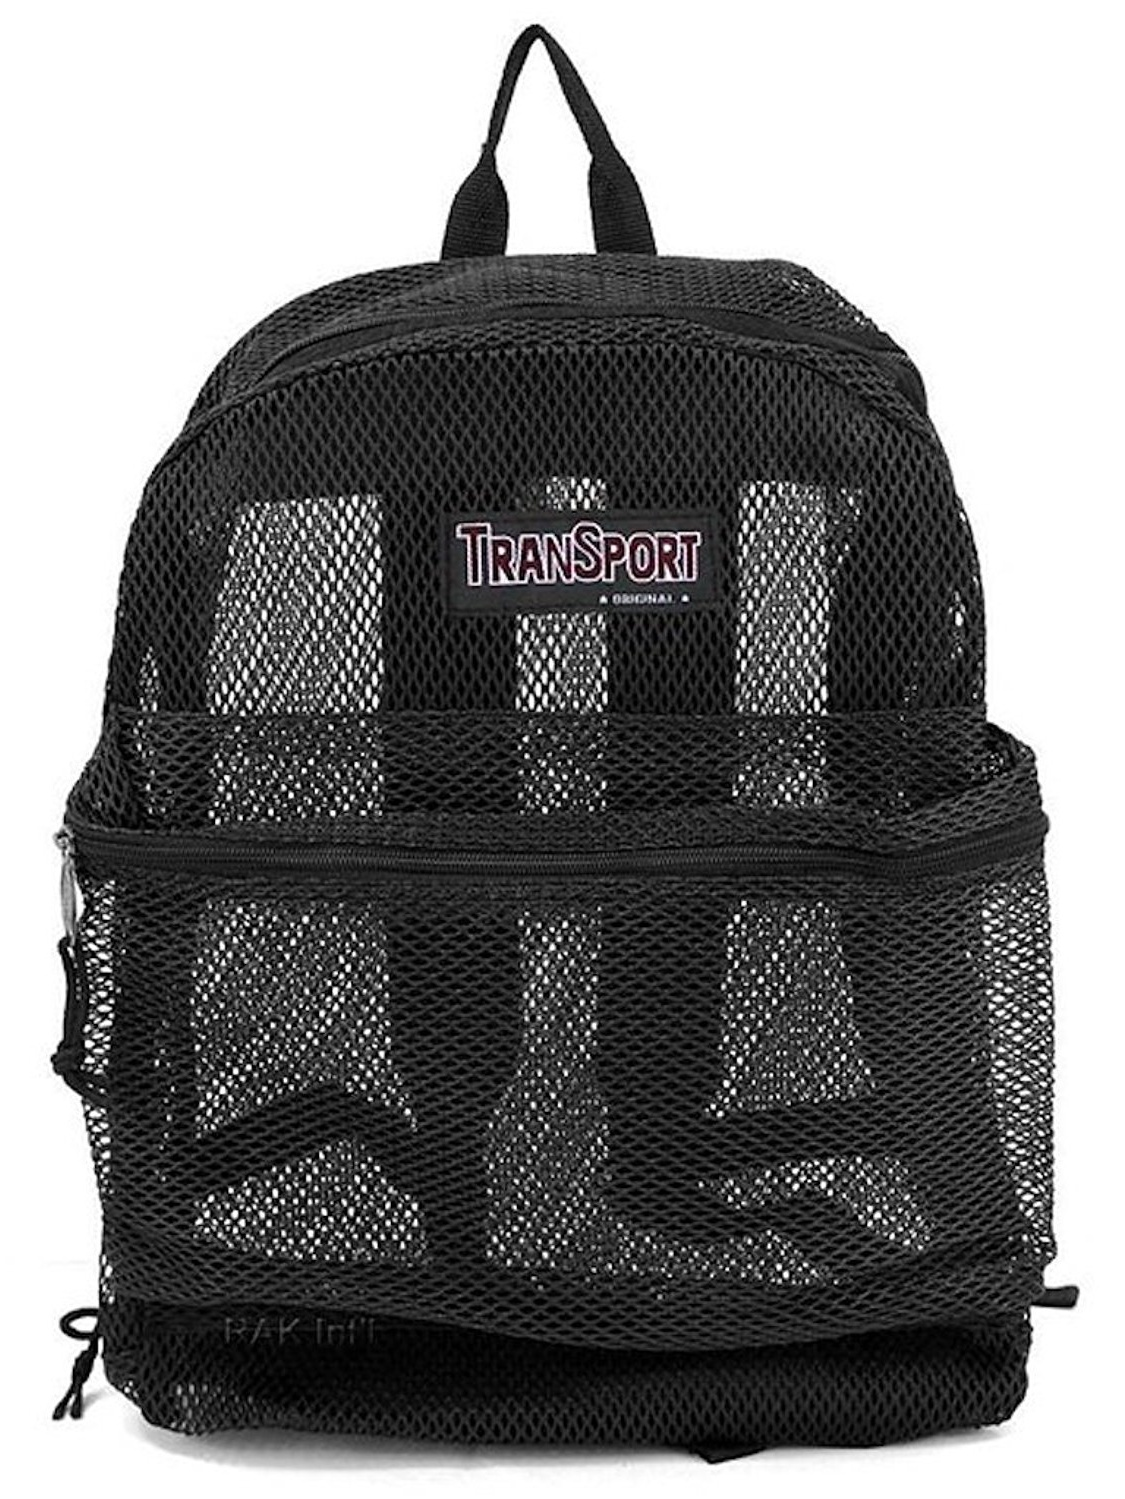 Travel Sport Transparent See Through Mesh Backpack  School Bag by